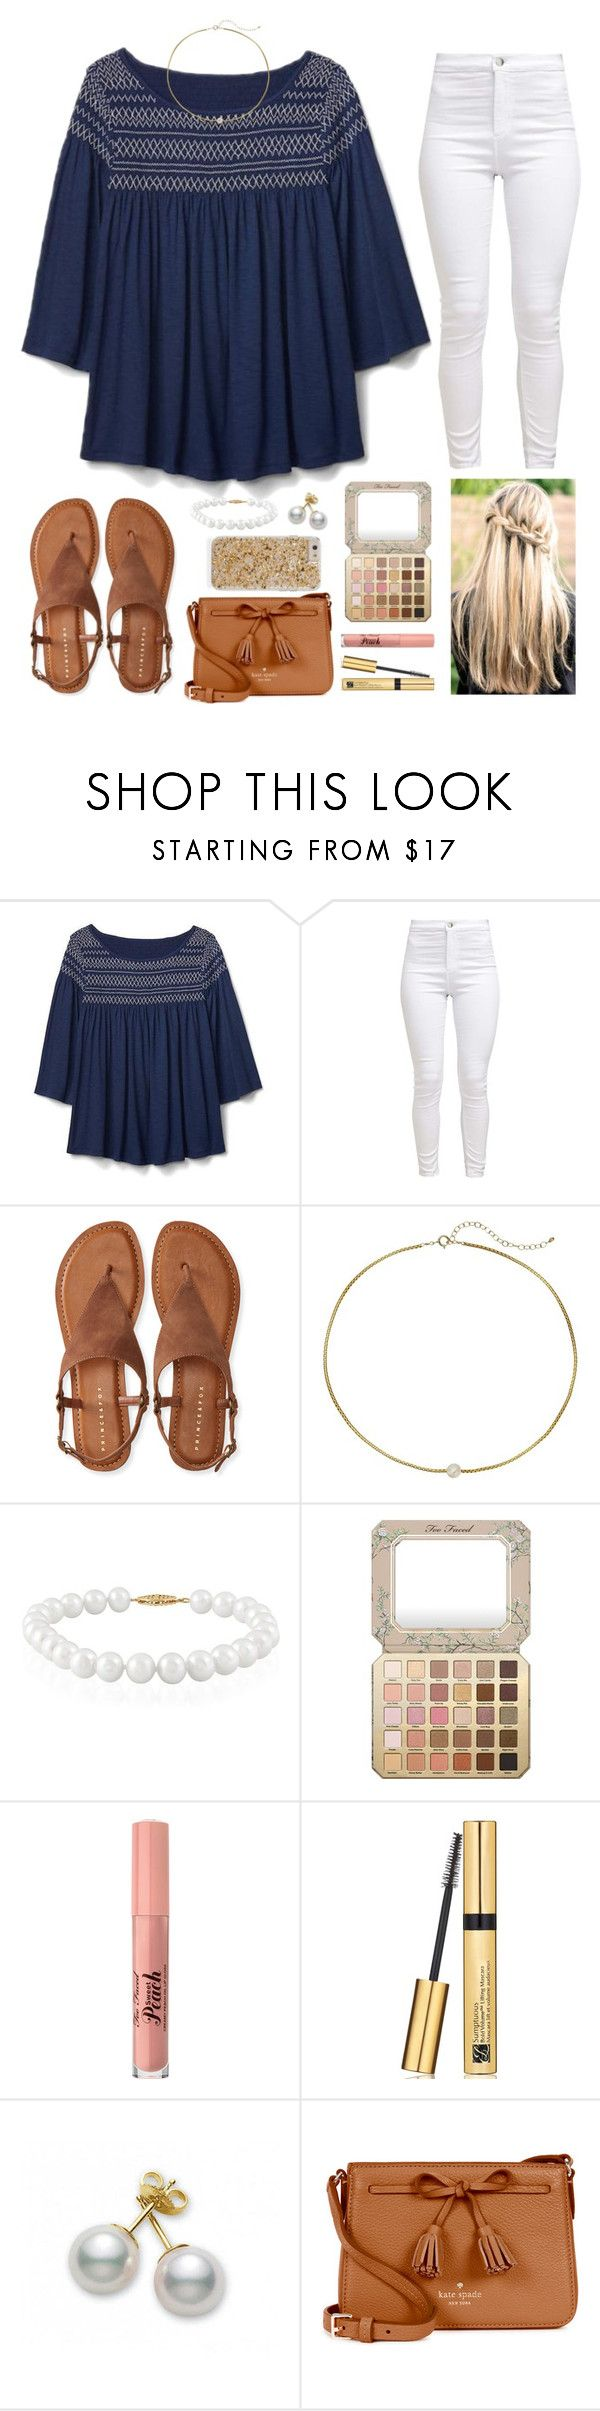 """church ootd"" by smaryb ❤ liked on Polyvore featuring Gap, Aéropostale, Dogeared, Belk & Co., Too Faced Cosmetics, Estée Lauder, Mikimoto and Kate Spade"